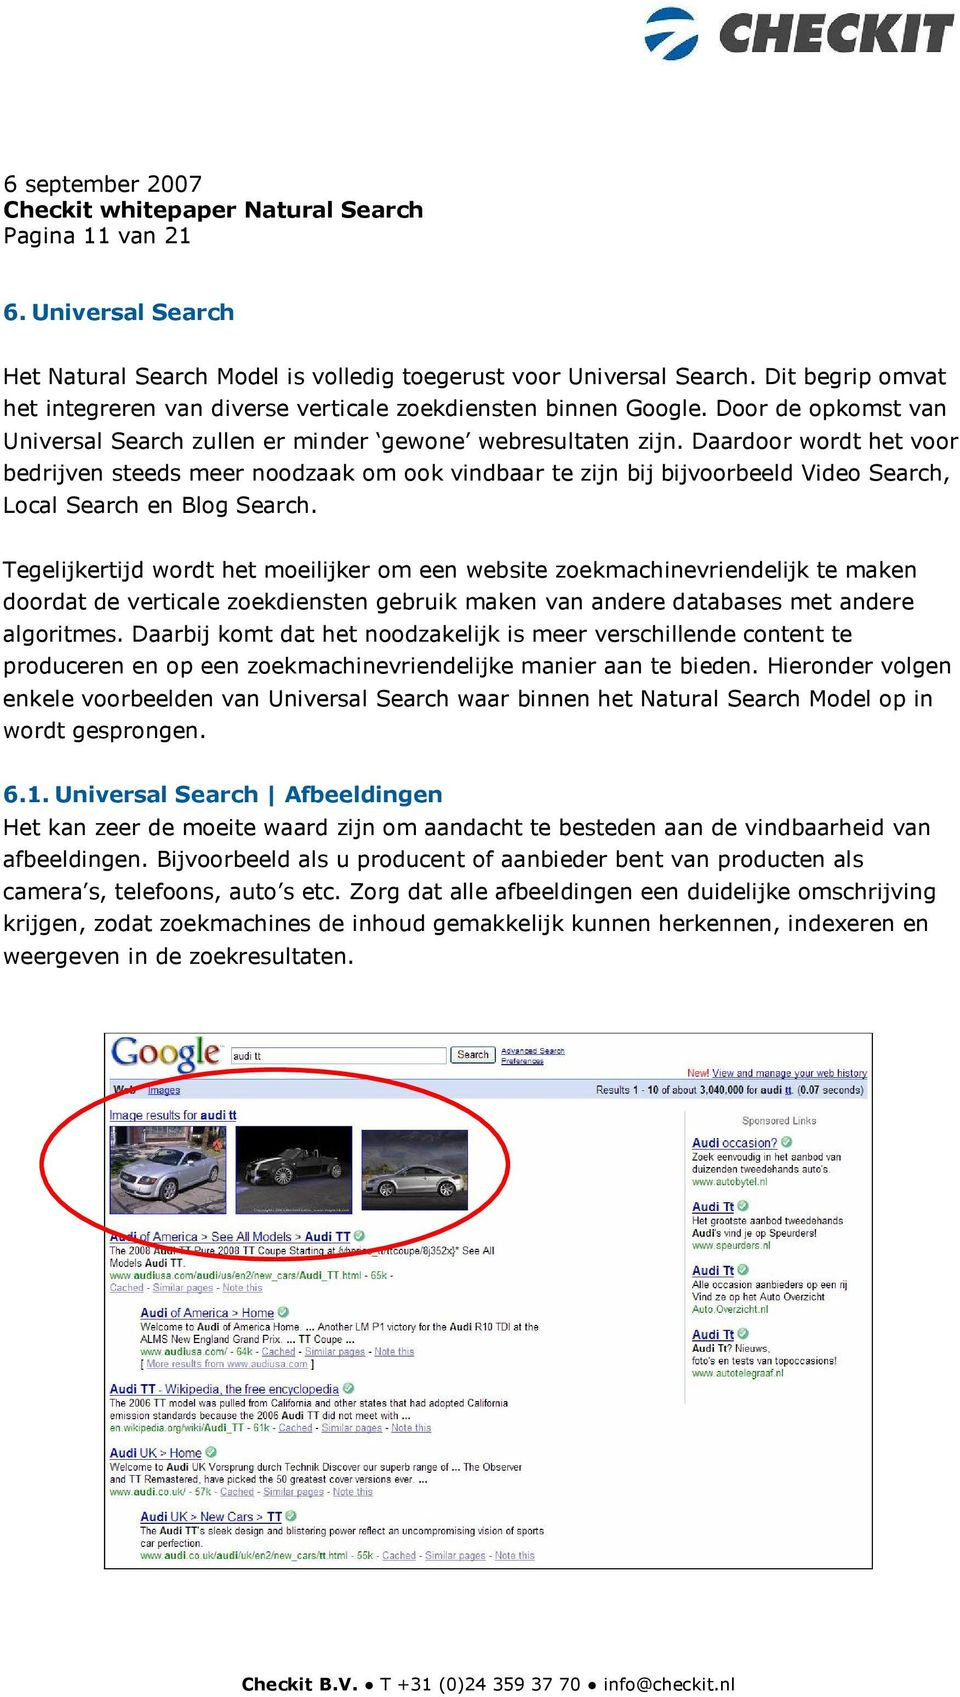 Daardoor wordt het voor bedrijven steeds meer noodzaak om ook vindbaar te zijn bij bijvoorbeeld Video Search, Local Search en Blog Search.